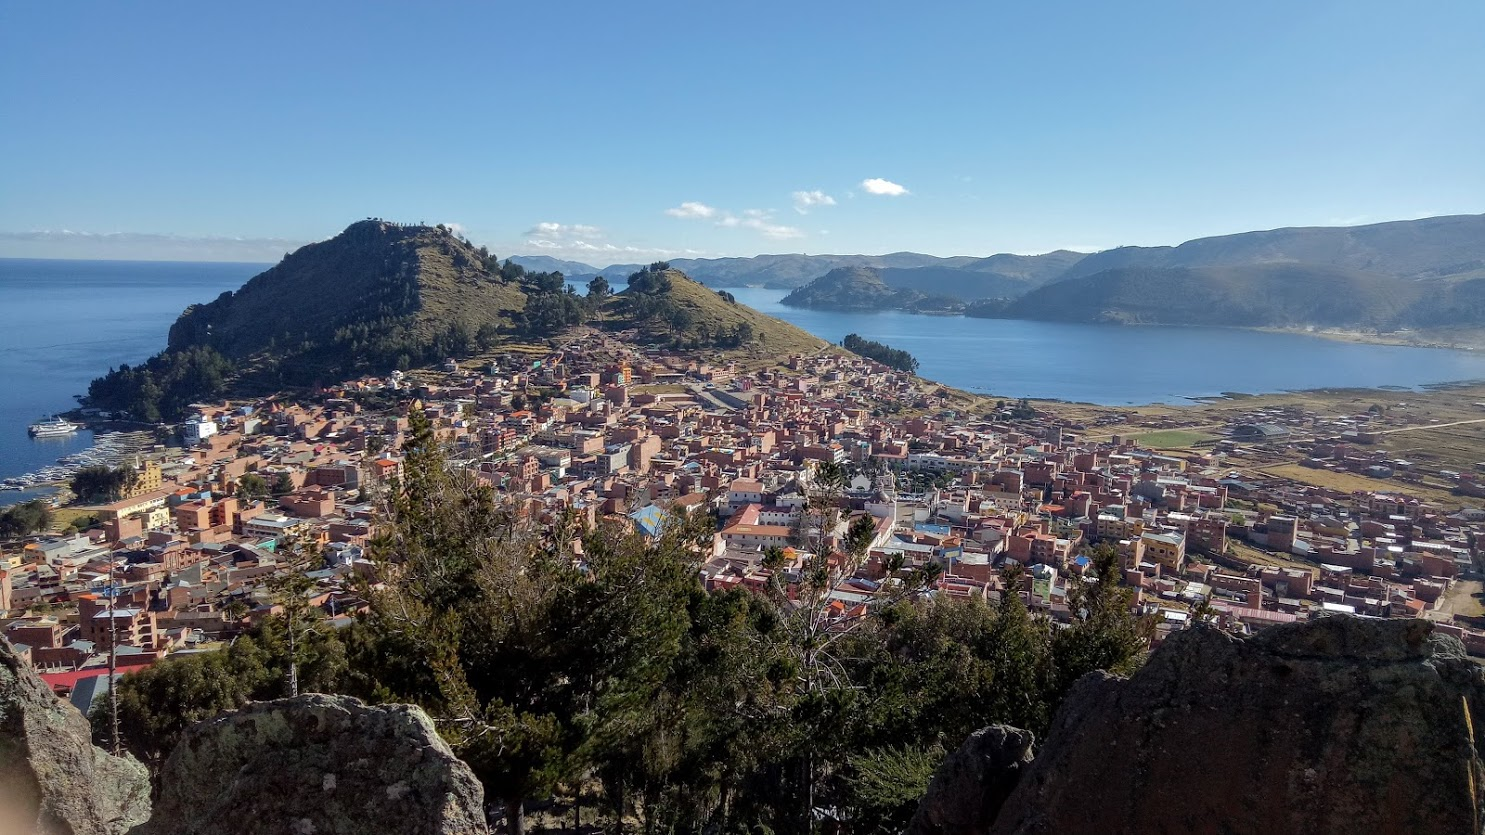 Photo credit: Simon Macara / Post sunrise view of Copacabana from the site of the Horca del Inca.